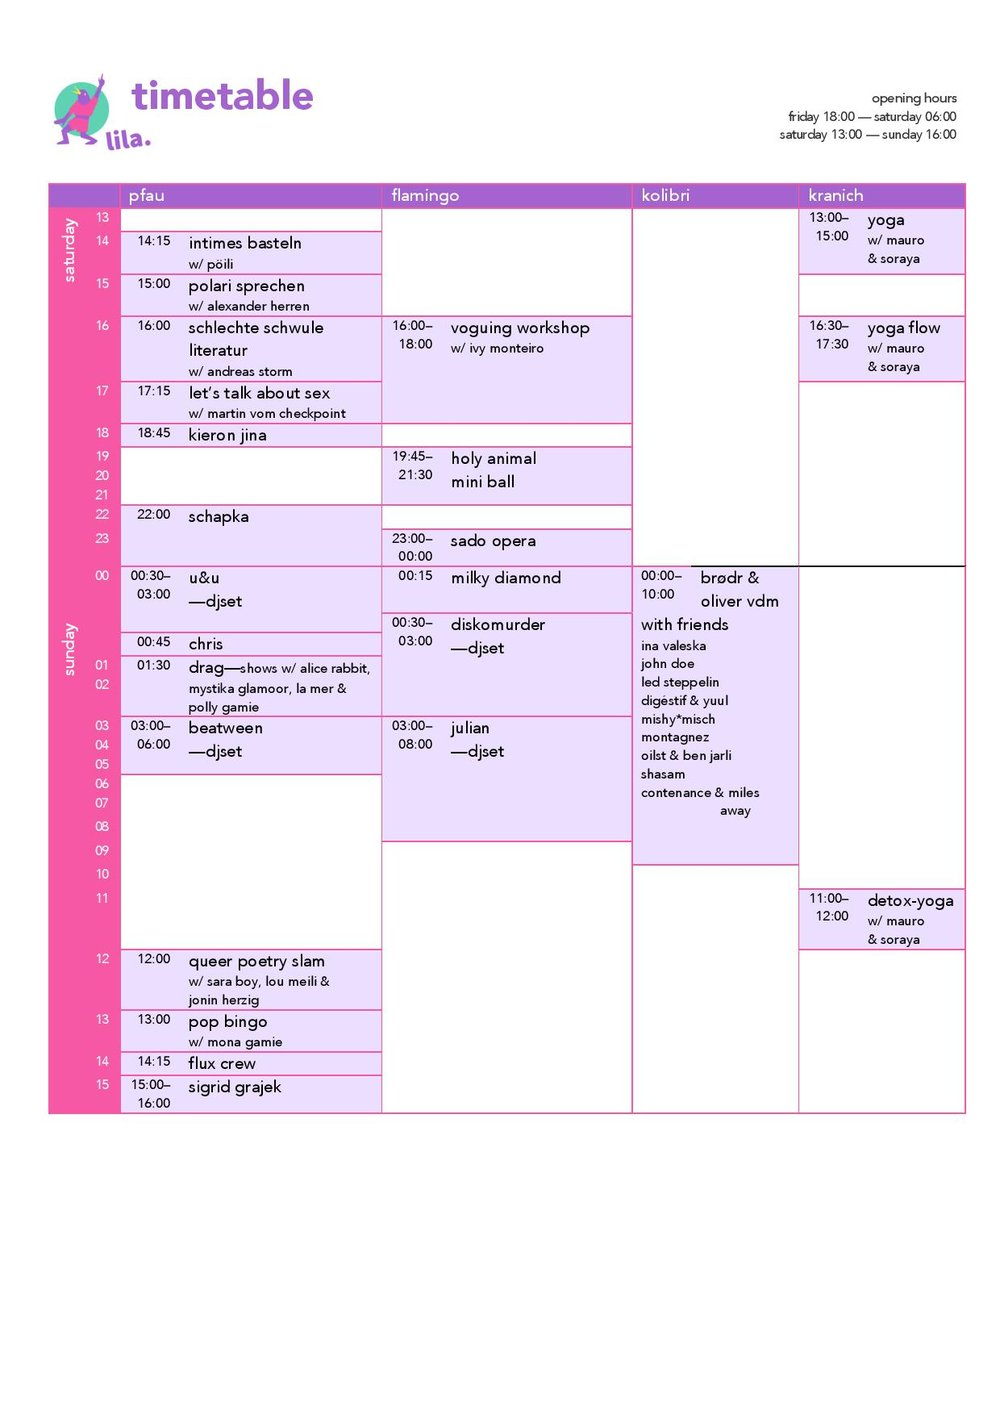 timetable-page-001.jpg